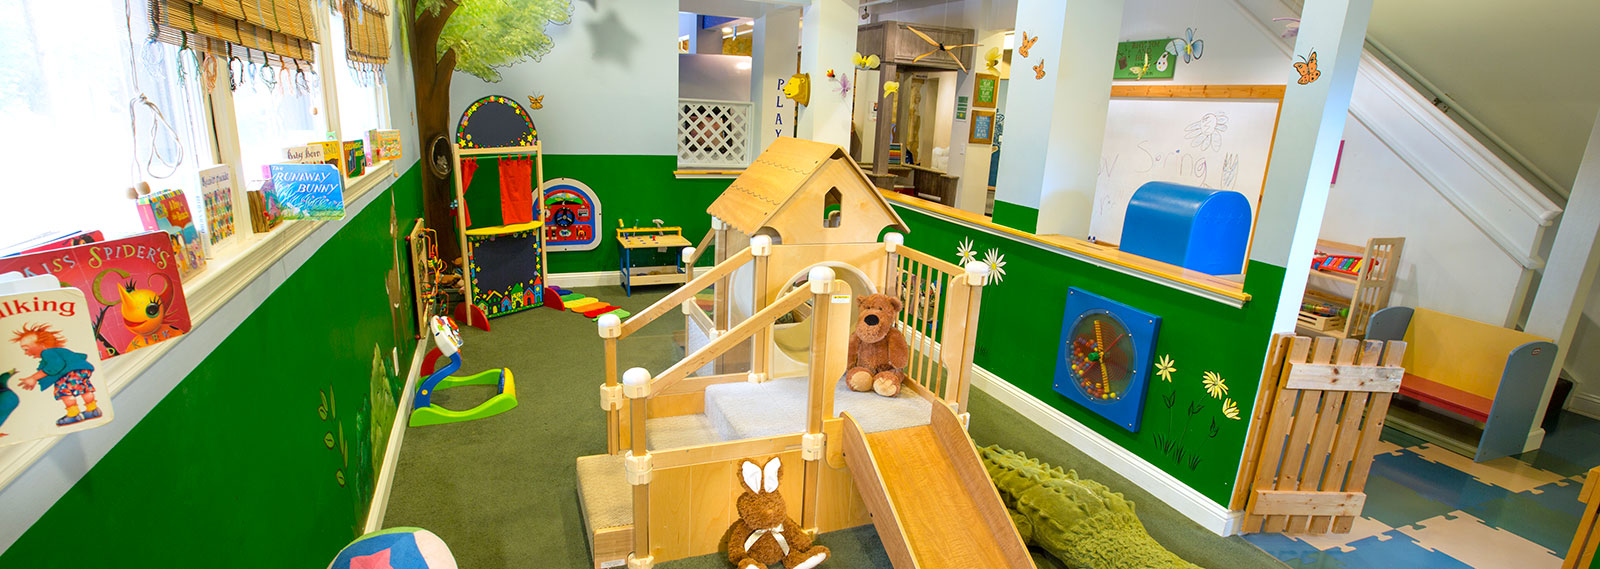 Sandbox Children's Museum Hilton Head Is.